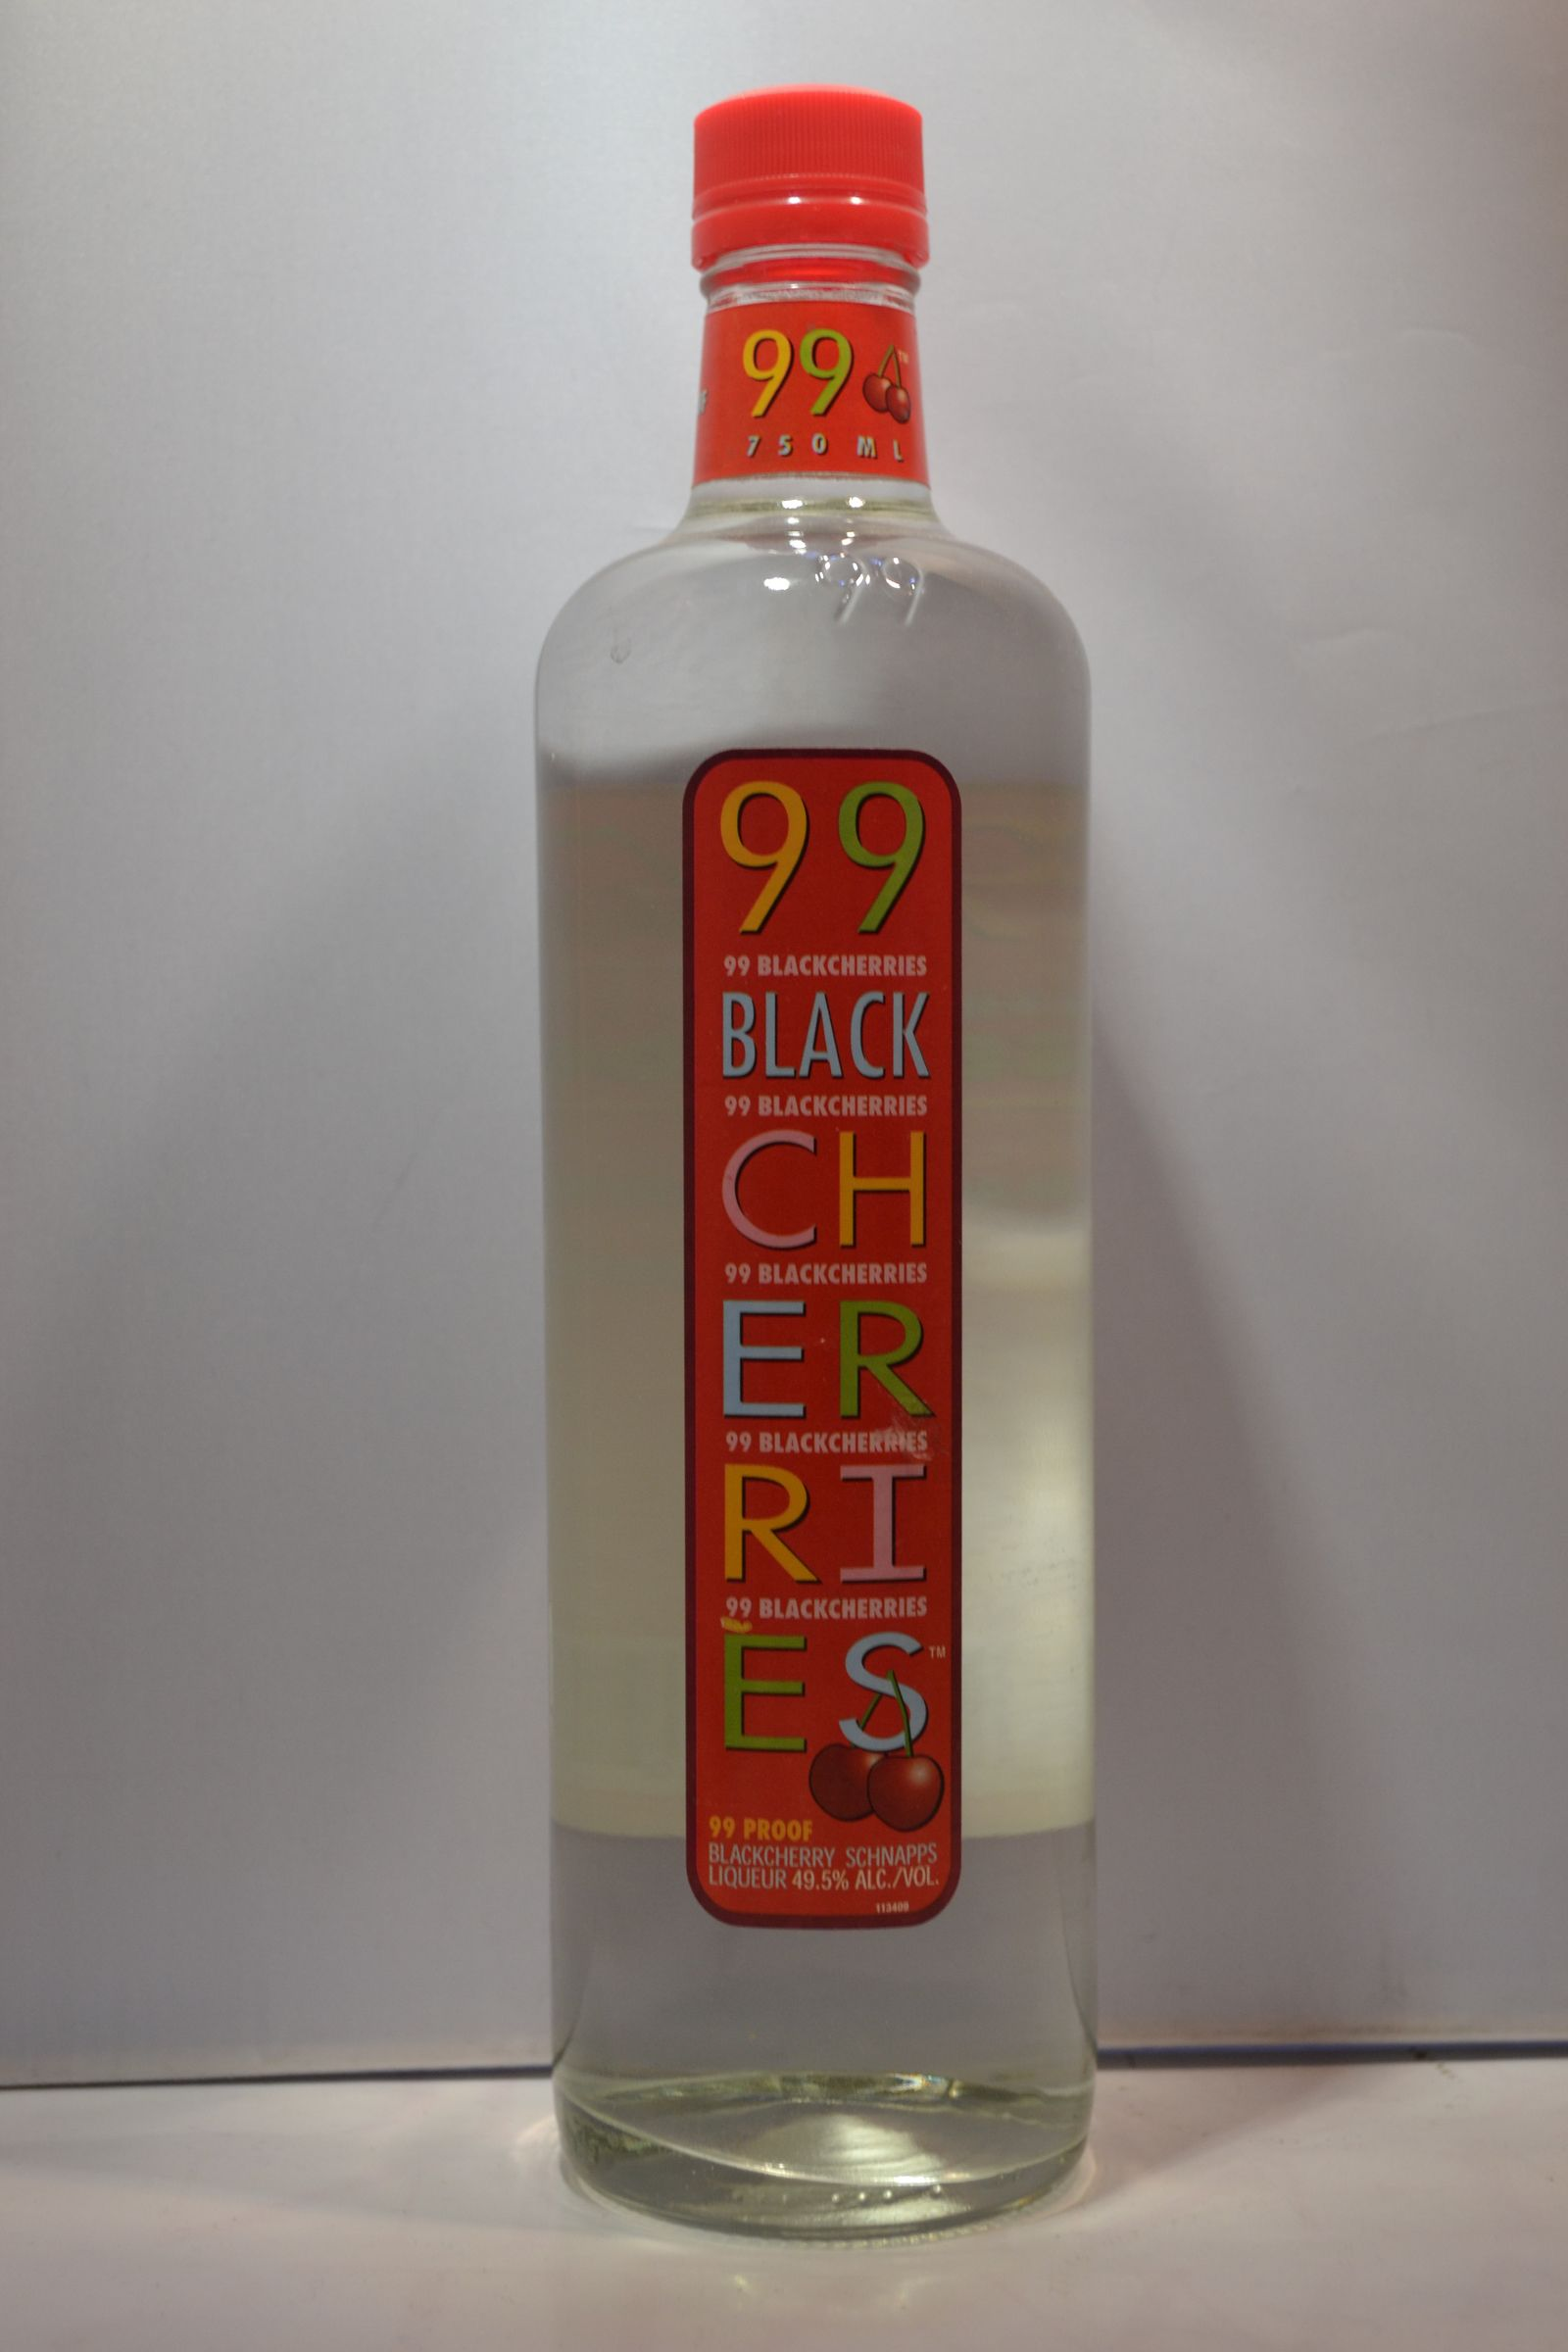 99 SCHNAPPS BLACK CHERRIES 99PF 750ML